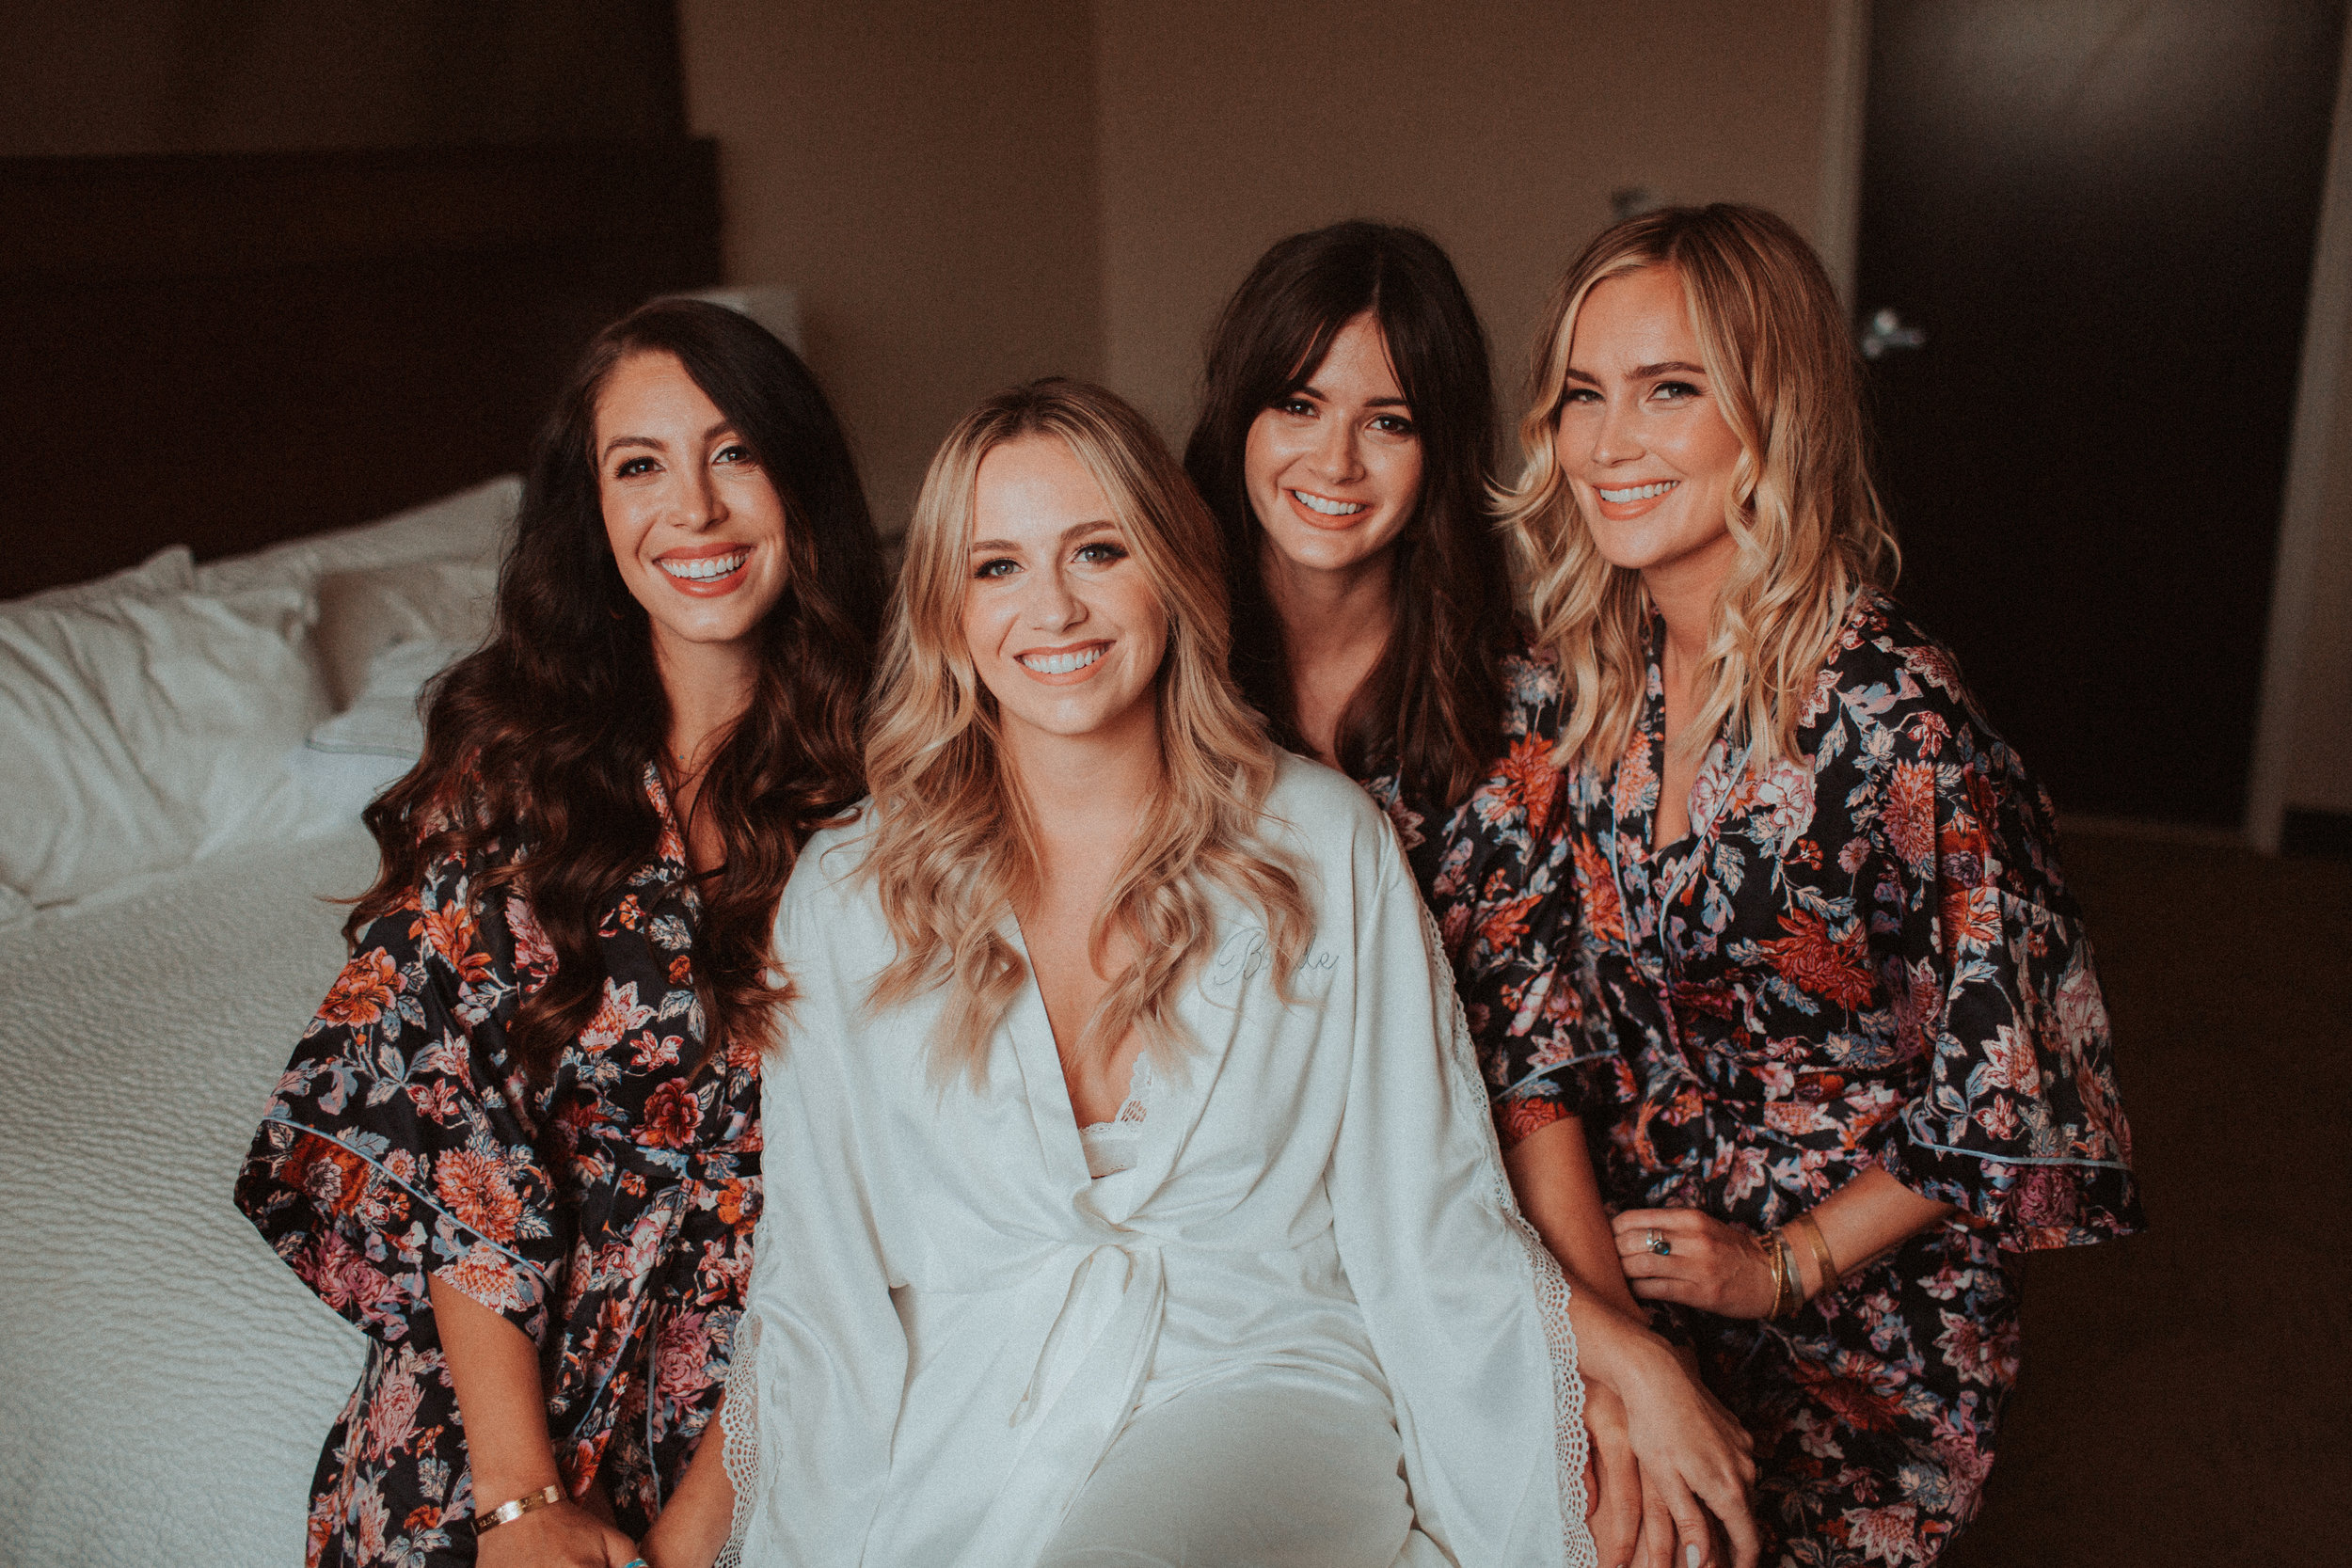 Wedding Party - hair + makeup .............................. $185hair ................................................. $95makeup........................................... $115airbrush makeup…………………… +$25hair + makeup trial……………………$200* false lash application included in the above mentioned pricing